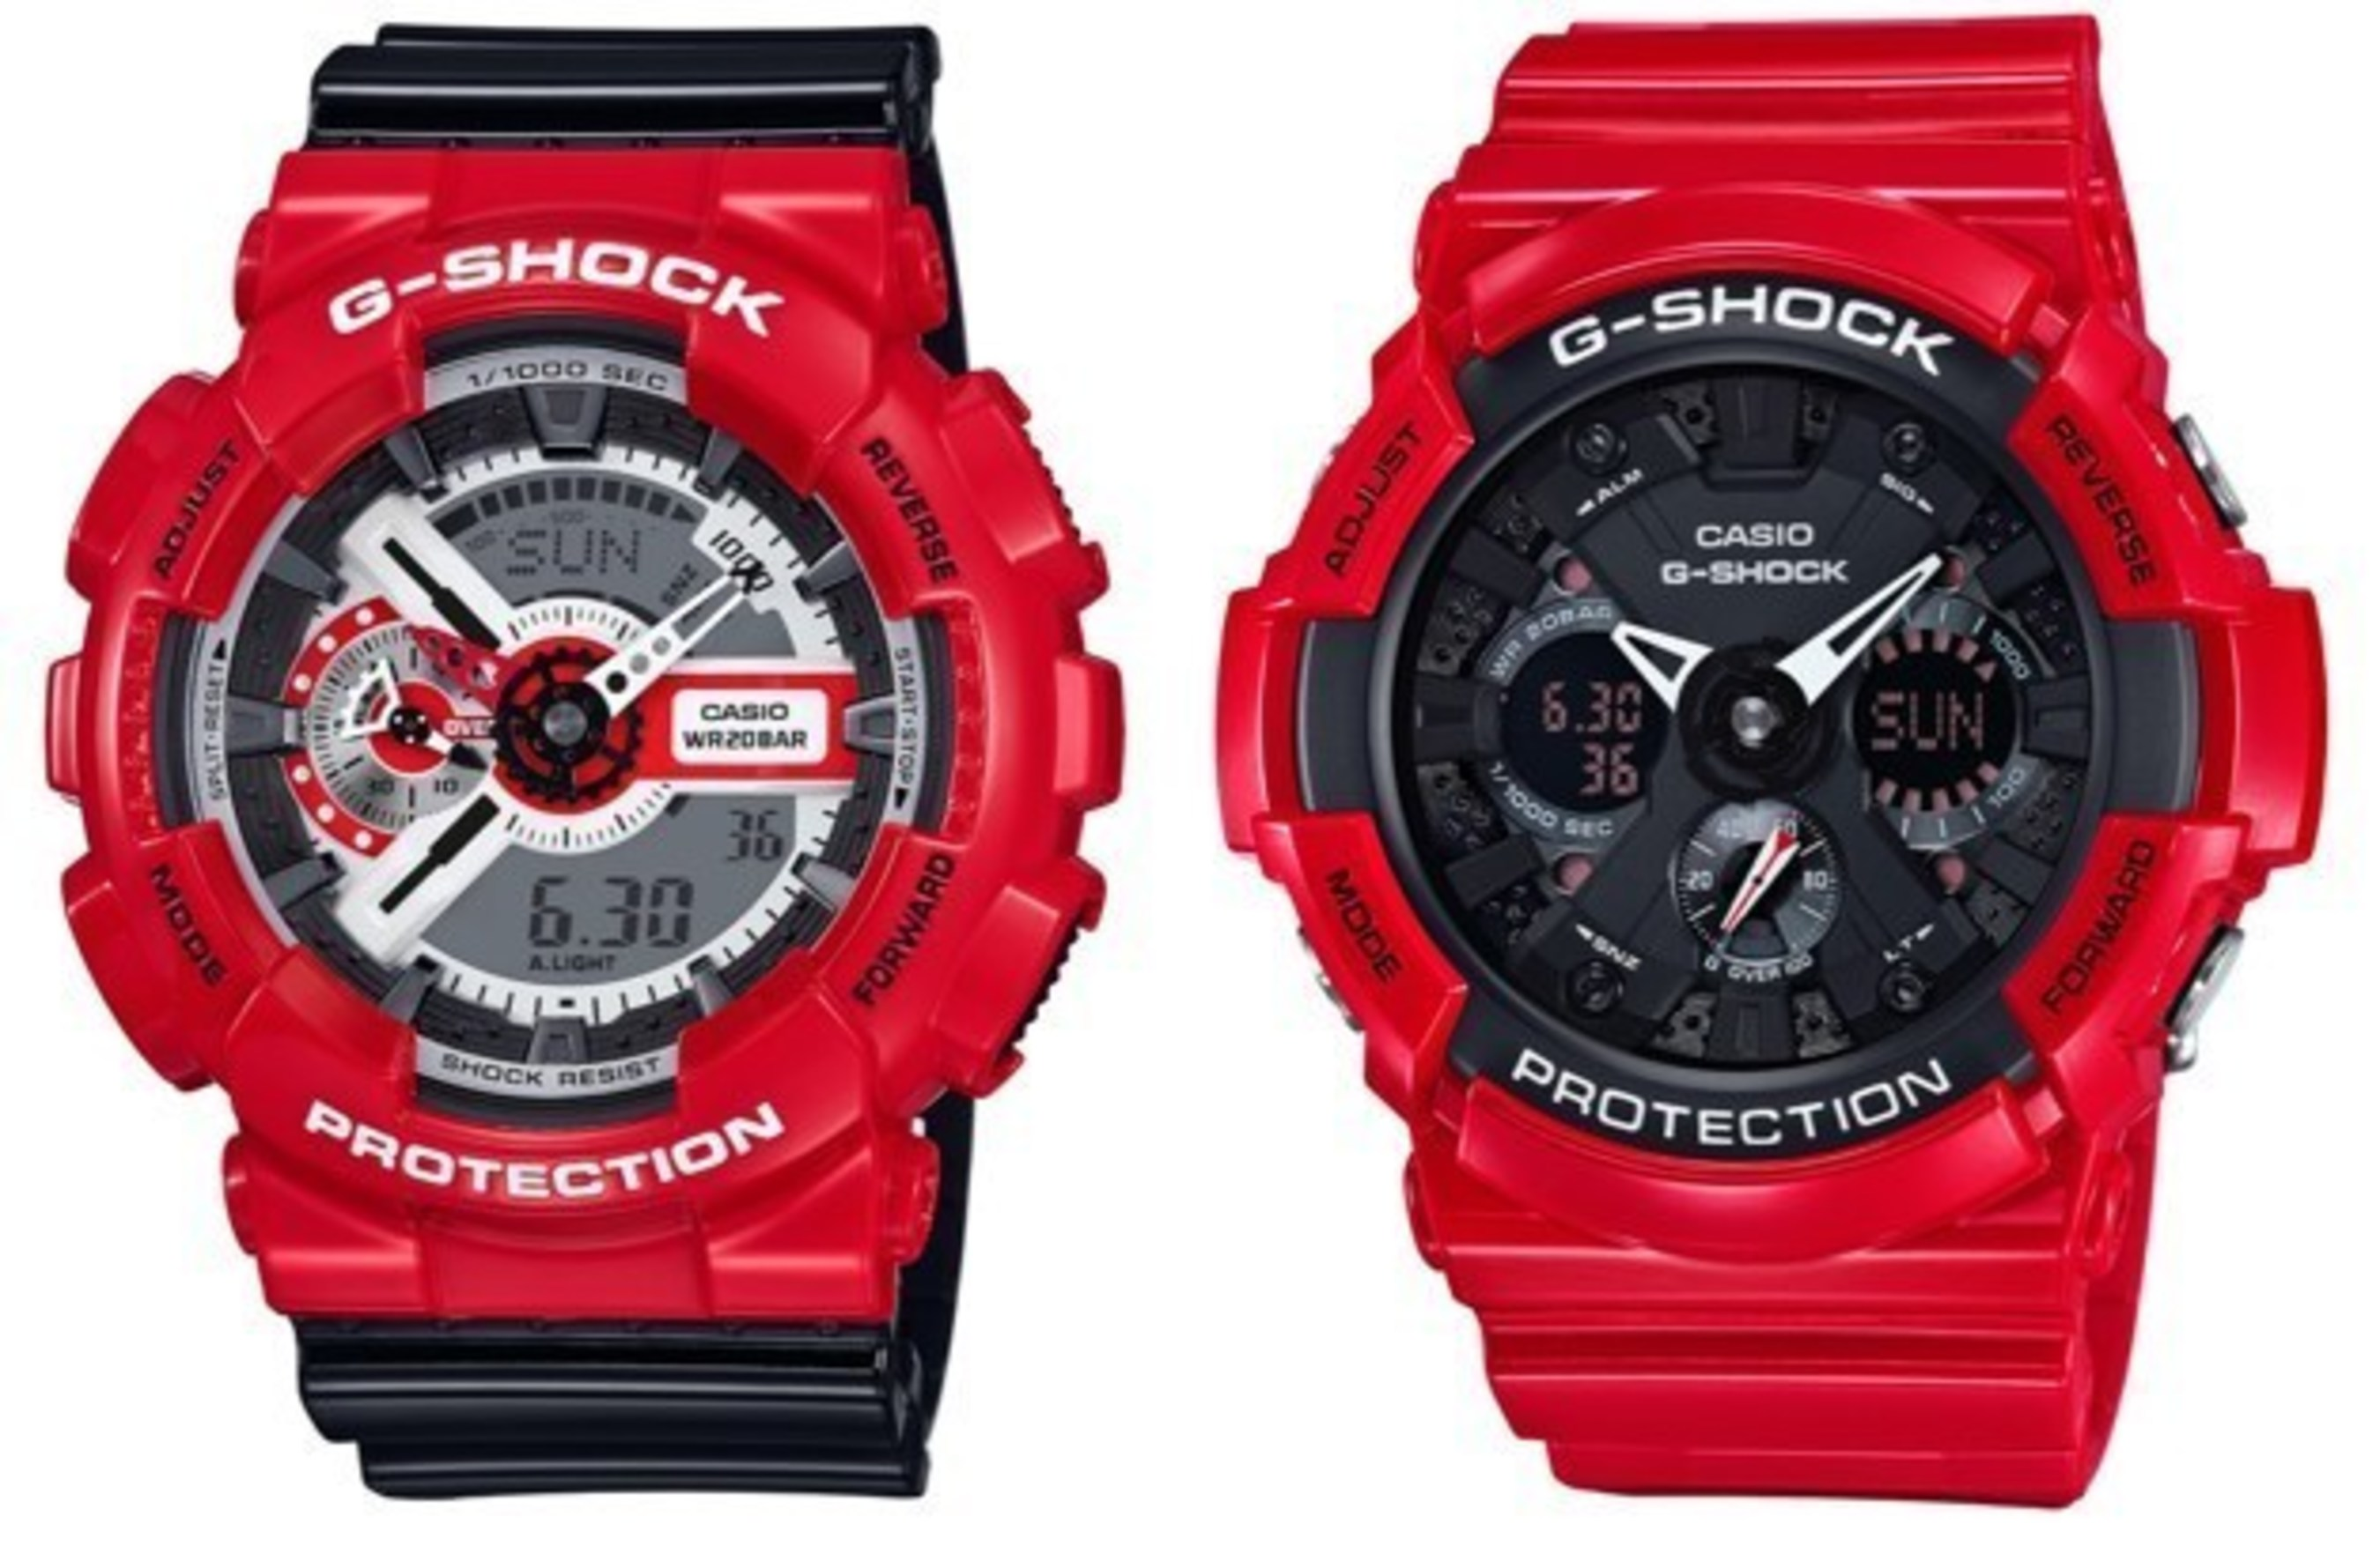 FALL IN LOVE WITH G-SHOCK FOR VALENTINES DAY - RED COLOR THEME